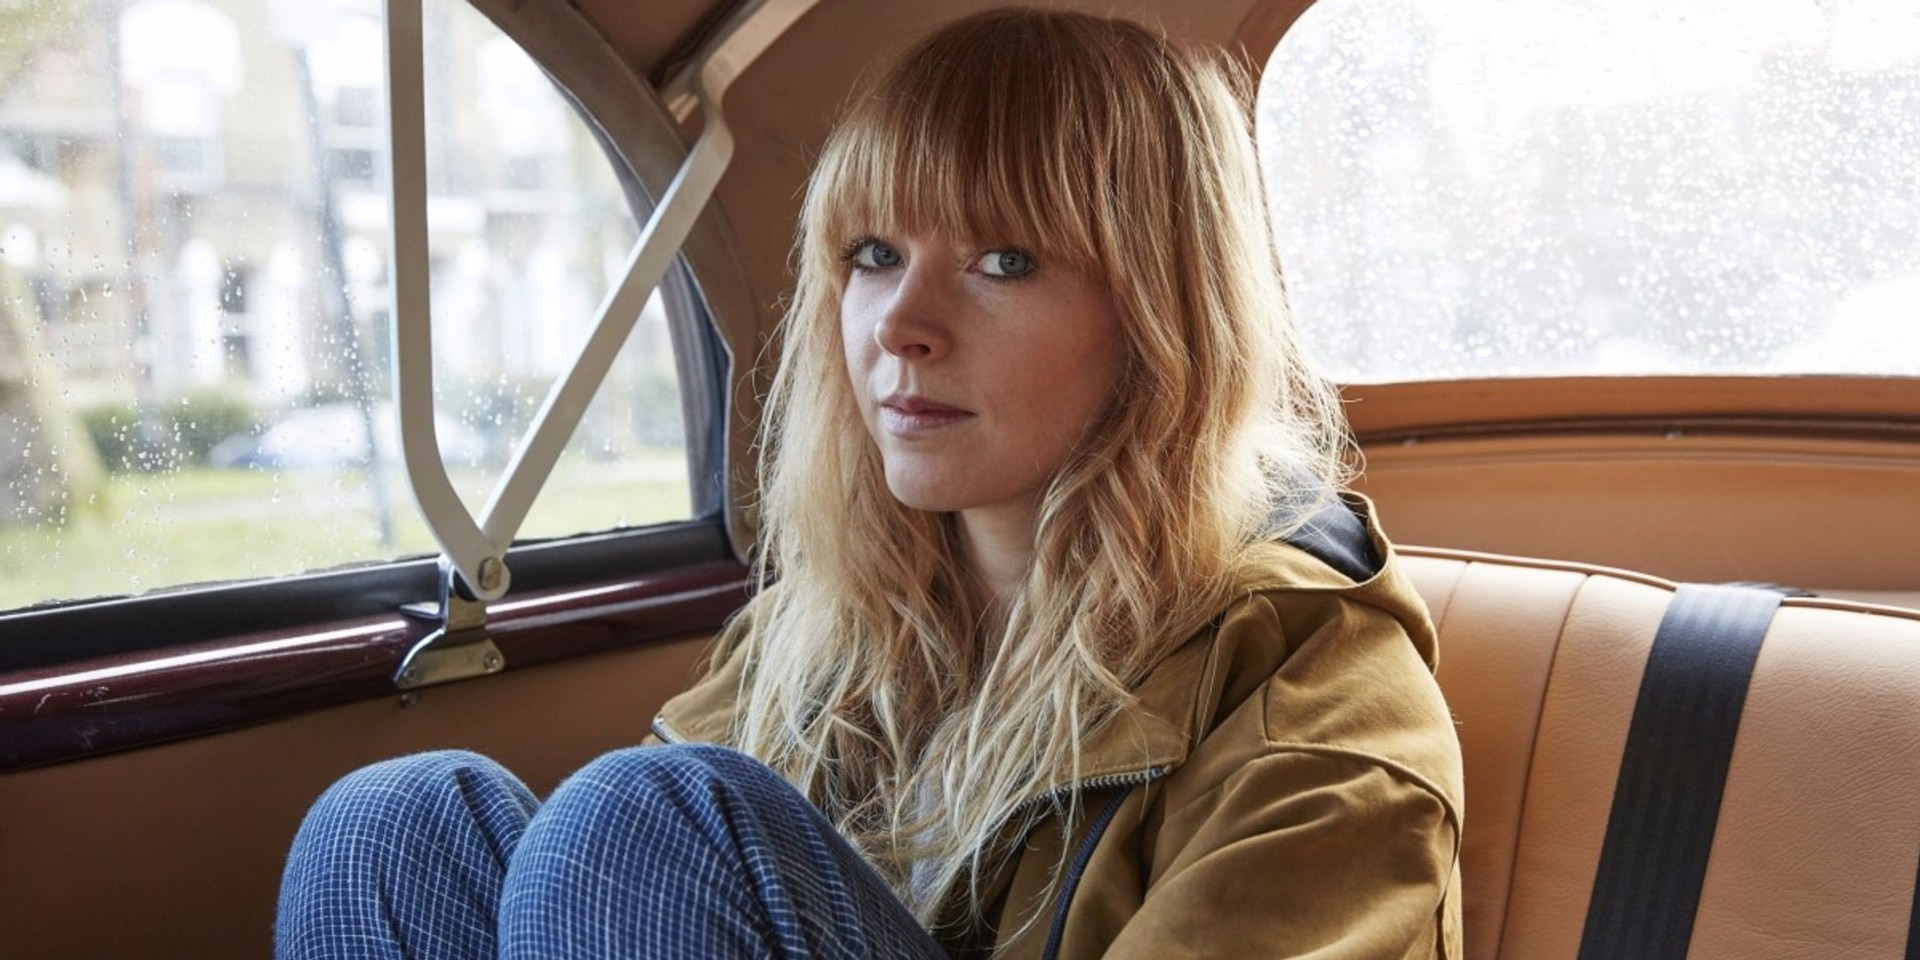 Lucy Rose launches vote for your hometown campaign